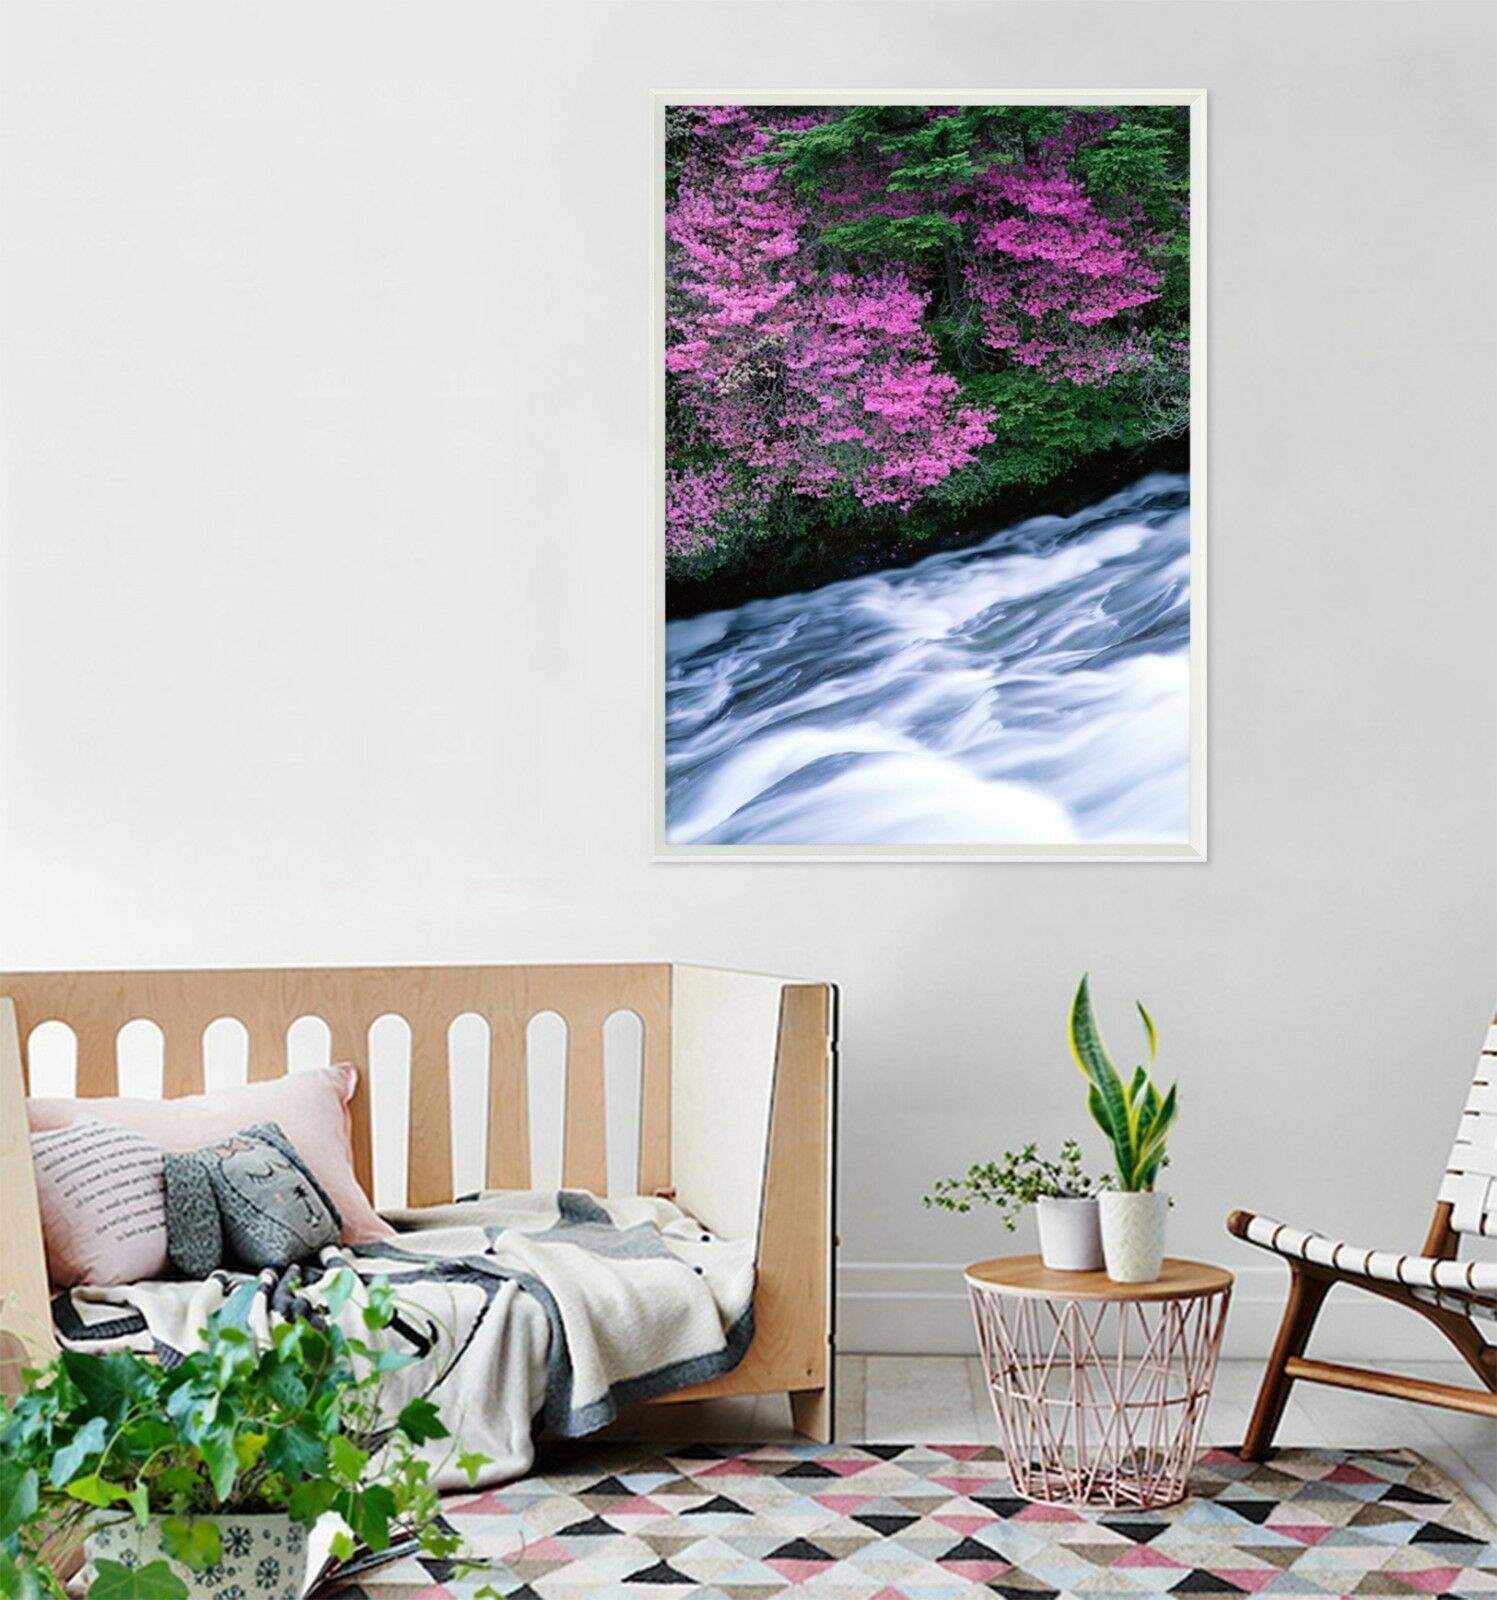 3D Flowers River 575 Fake Framed Poster Home Decor Print Painting Unique Art